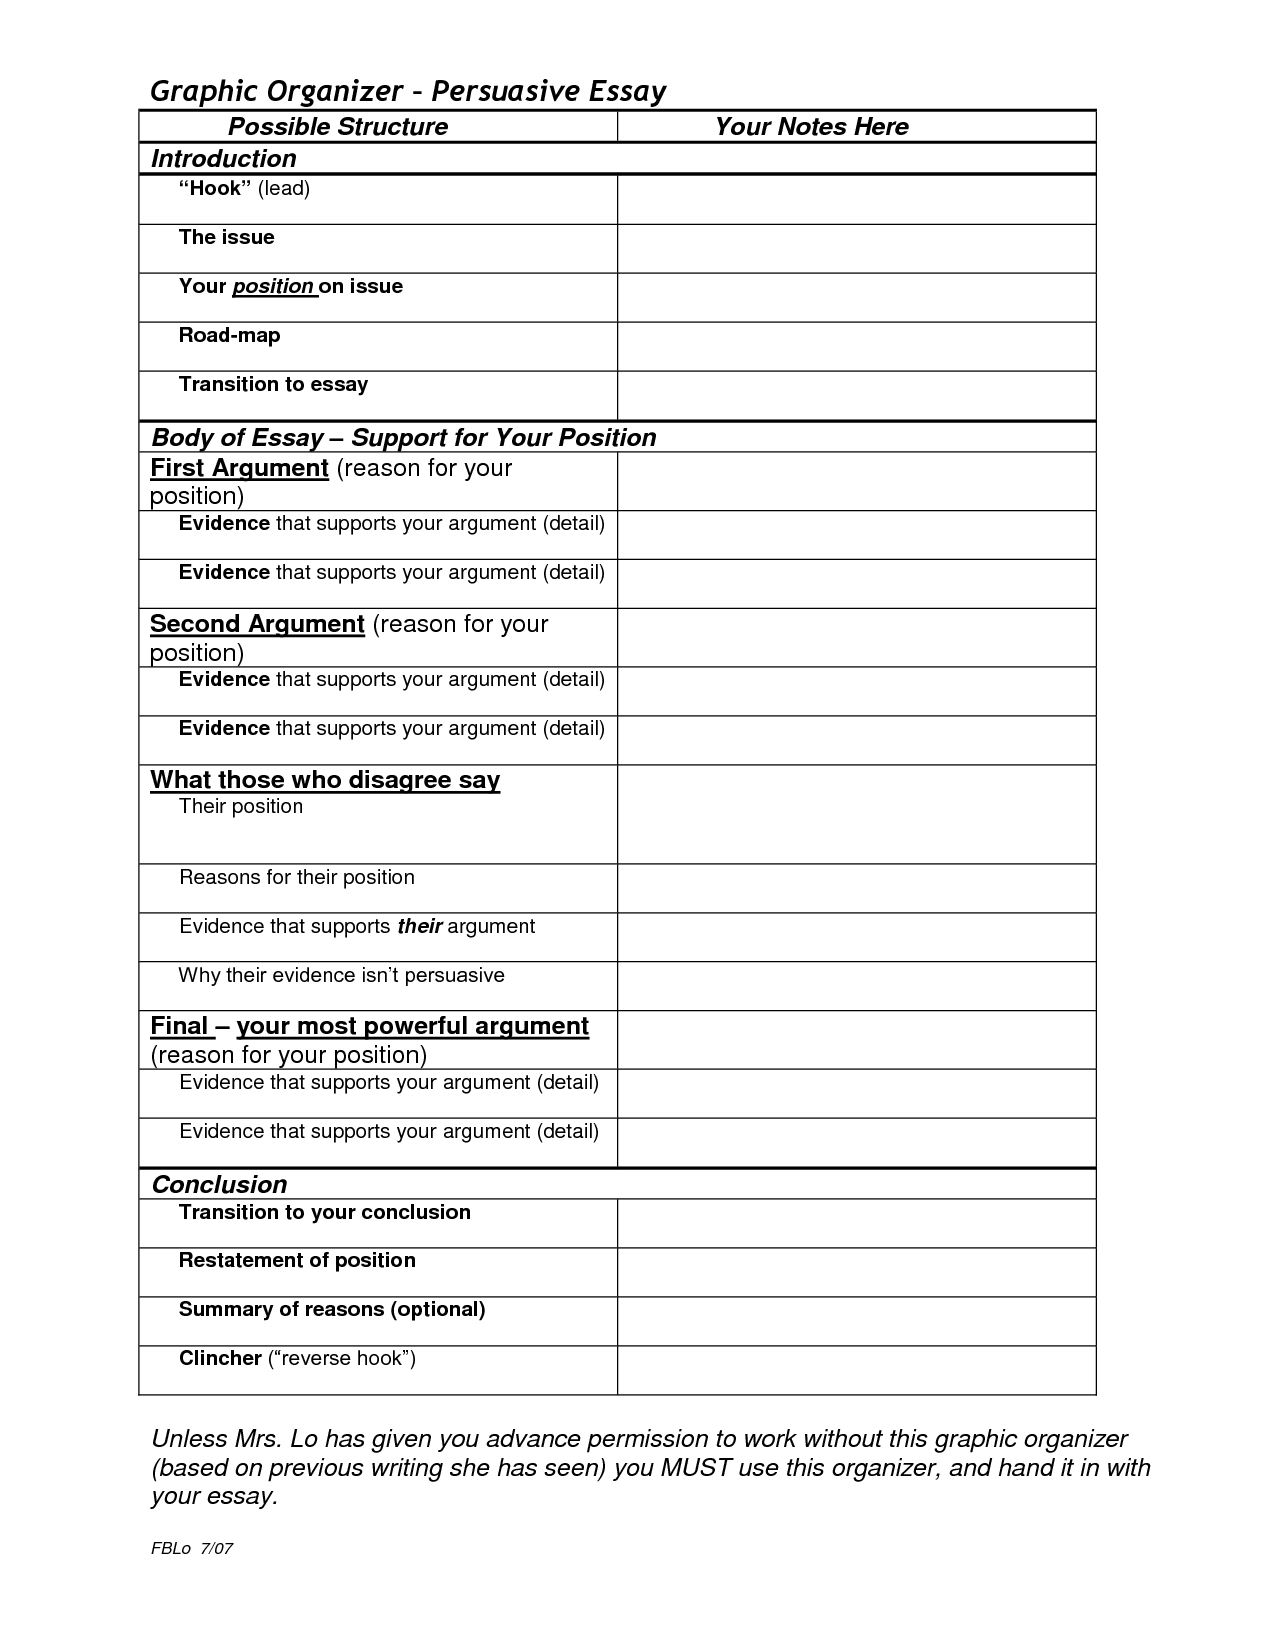 graphic organizers college essay graphic organizer persuasive search